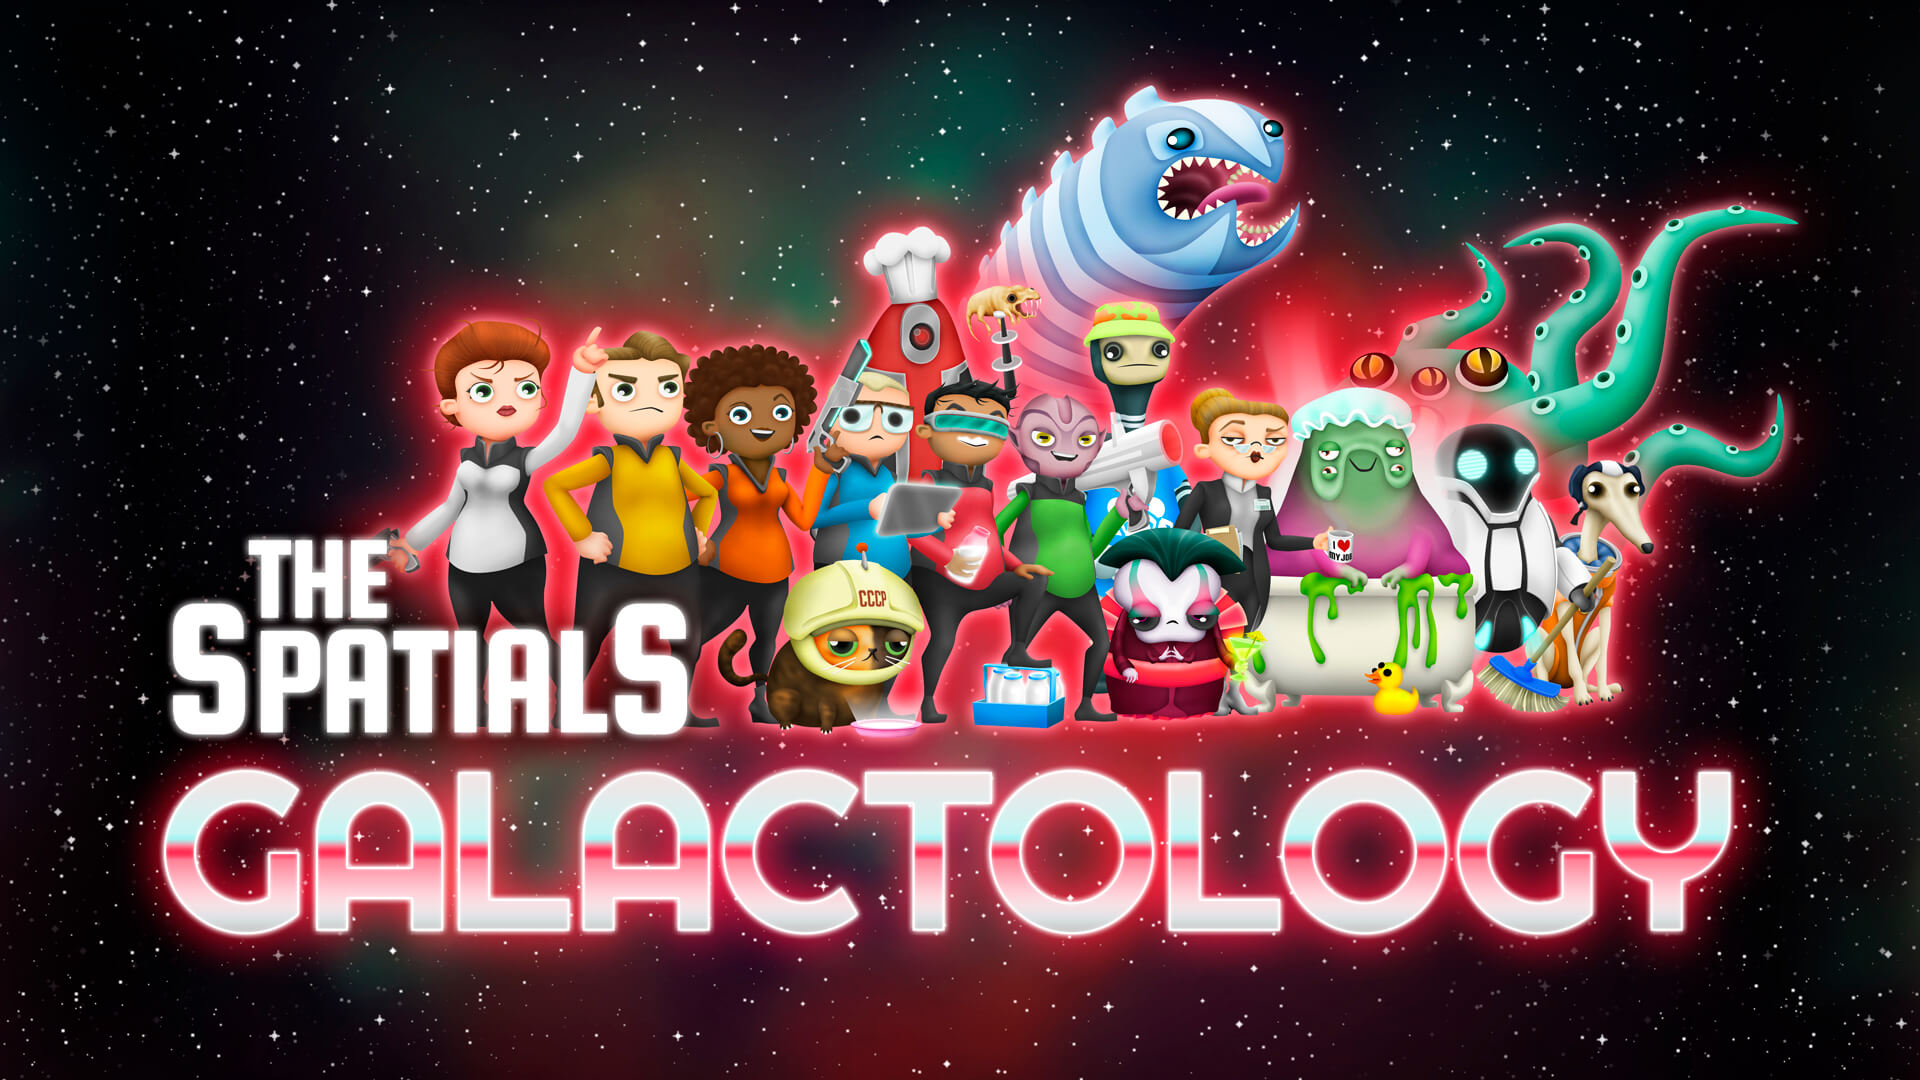 The Spatials: Galactology (Bildrechte: Weird and Wry)